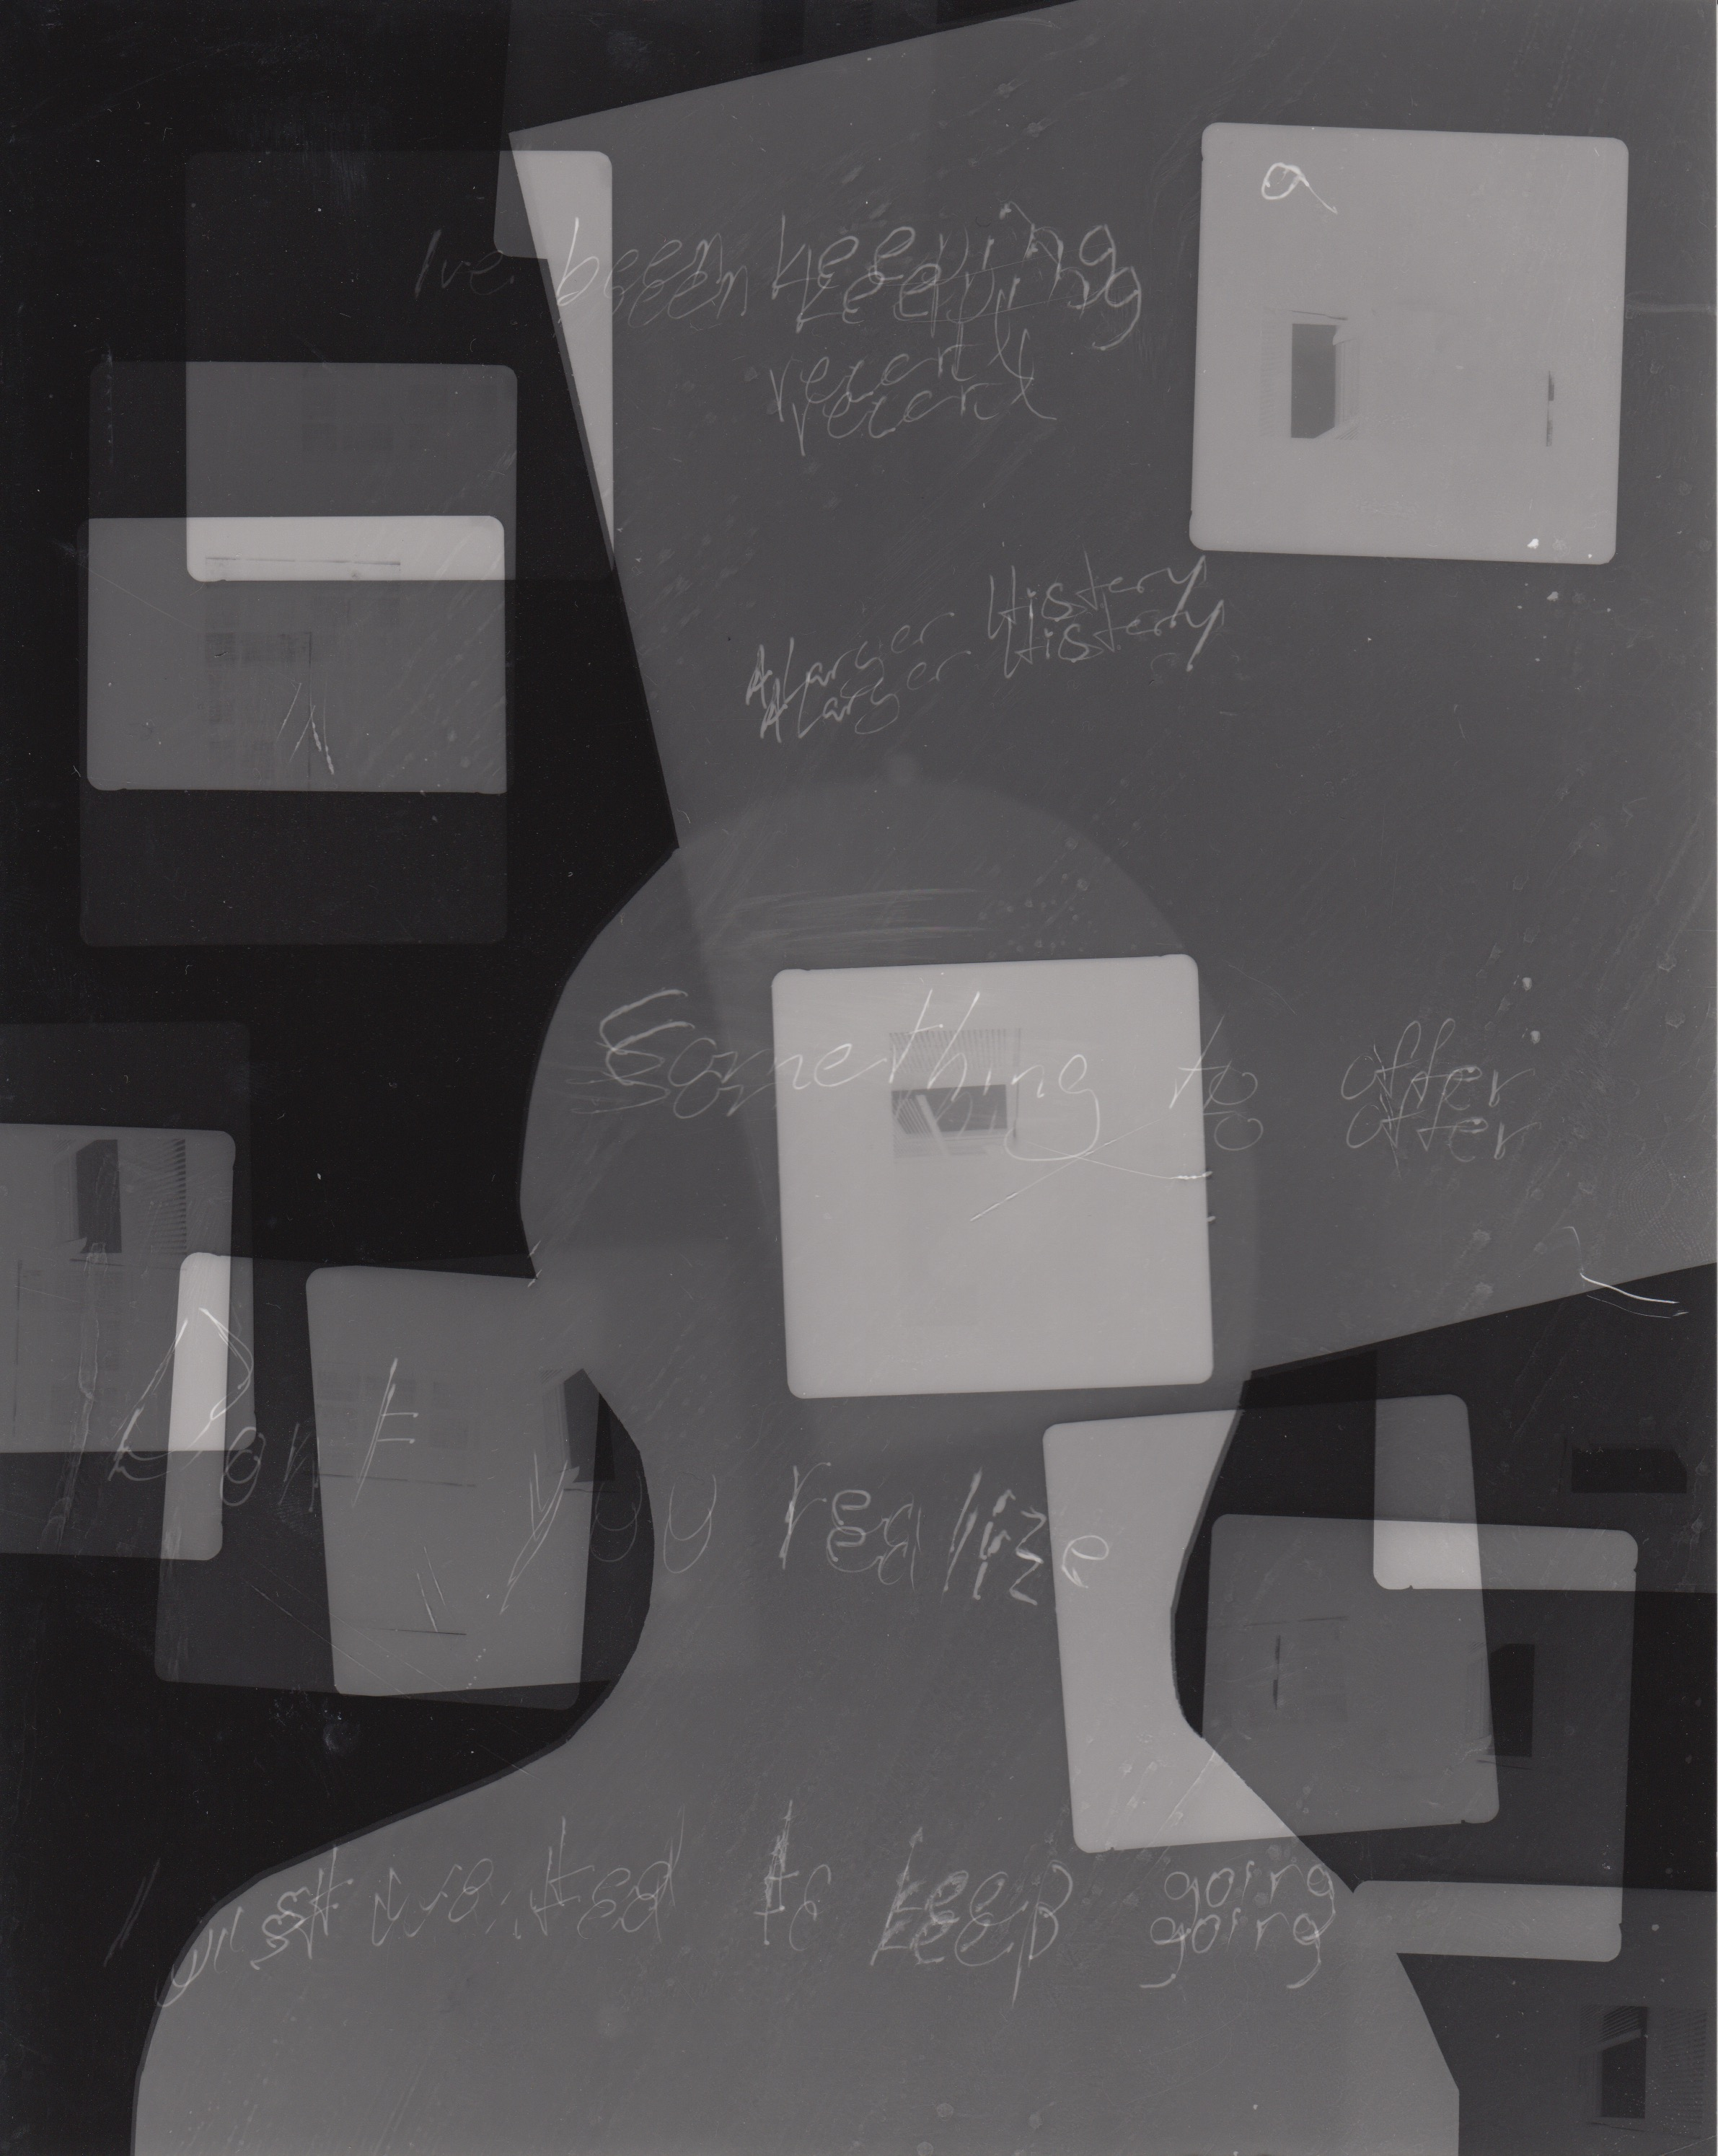 I've been keeping a record (1.5) - Photogram